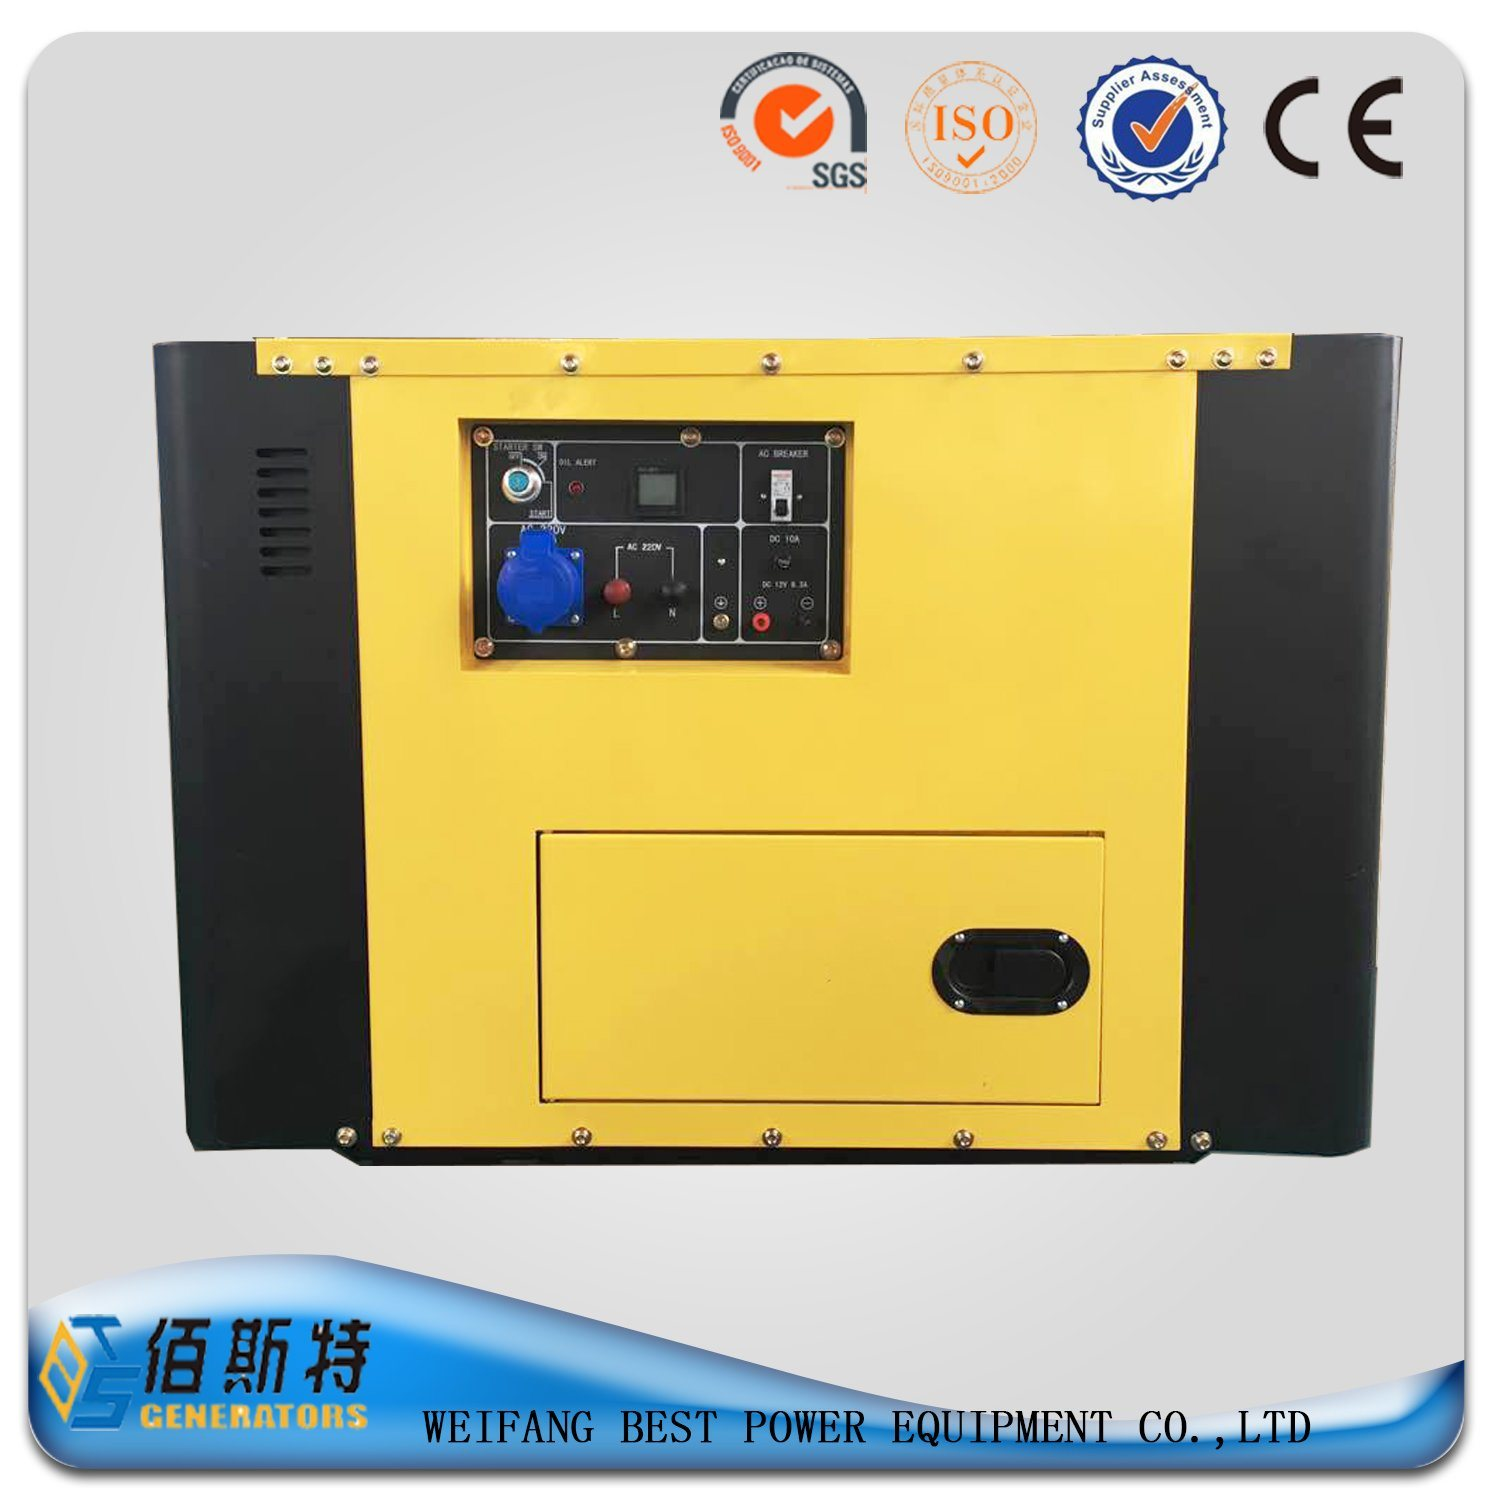 China 6kw Home Use Small Silent Diesel Generator Set with